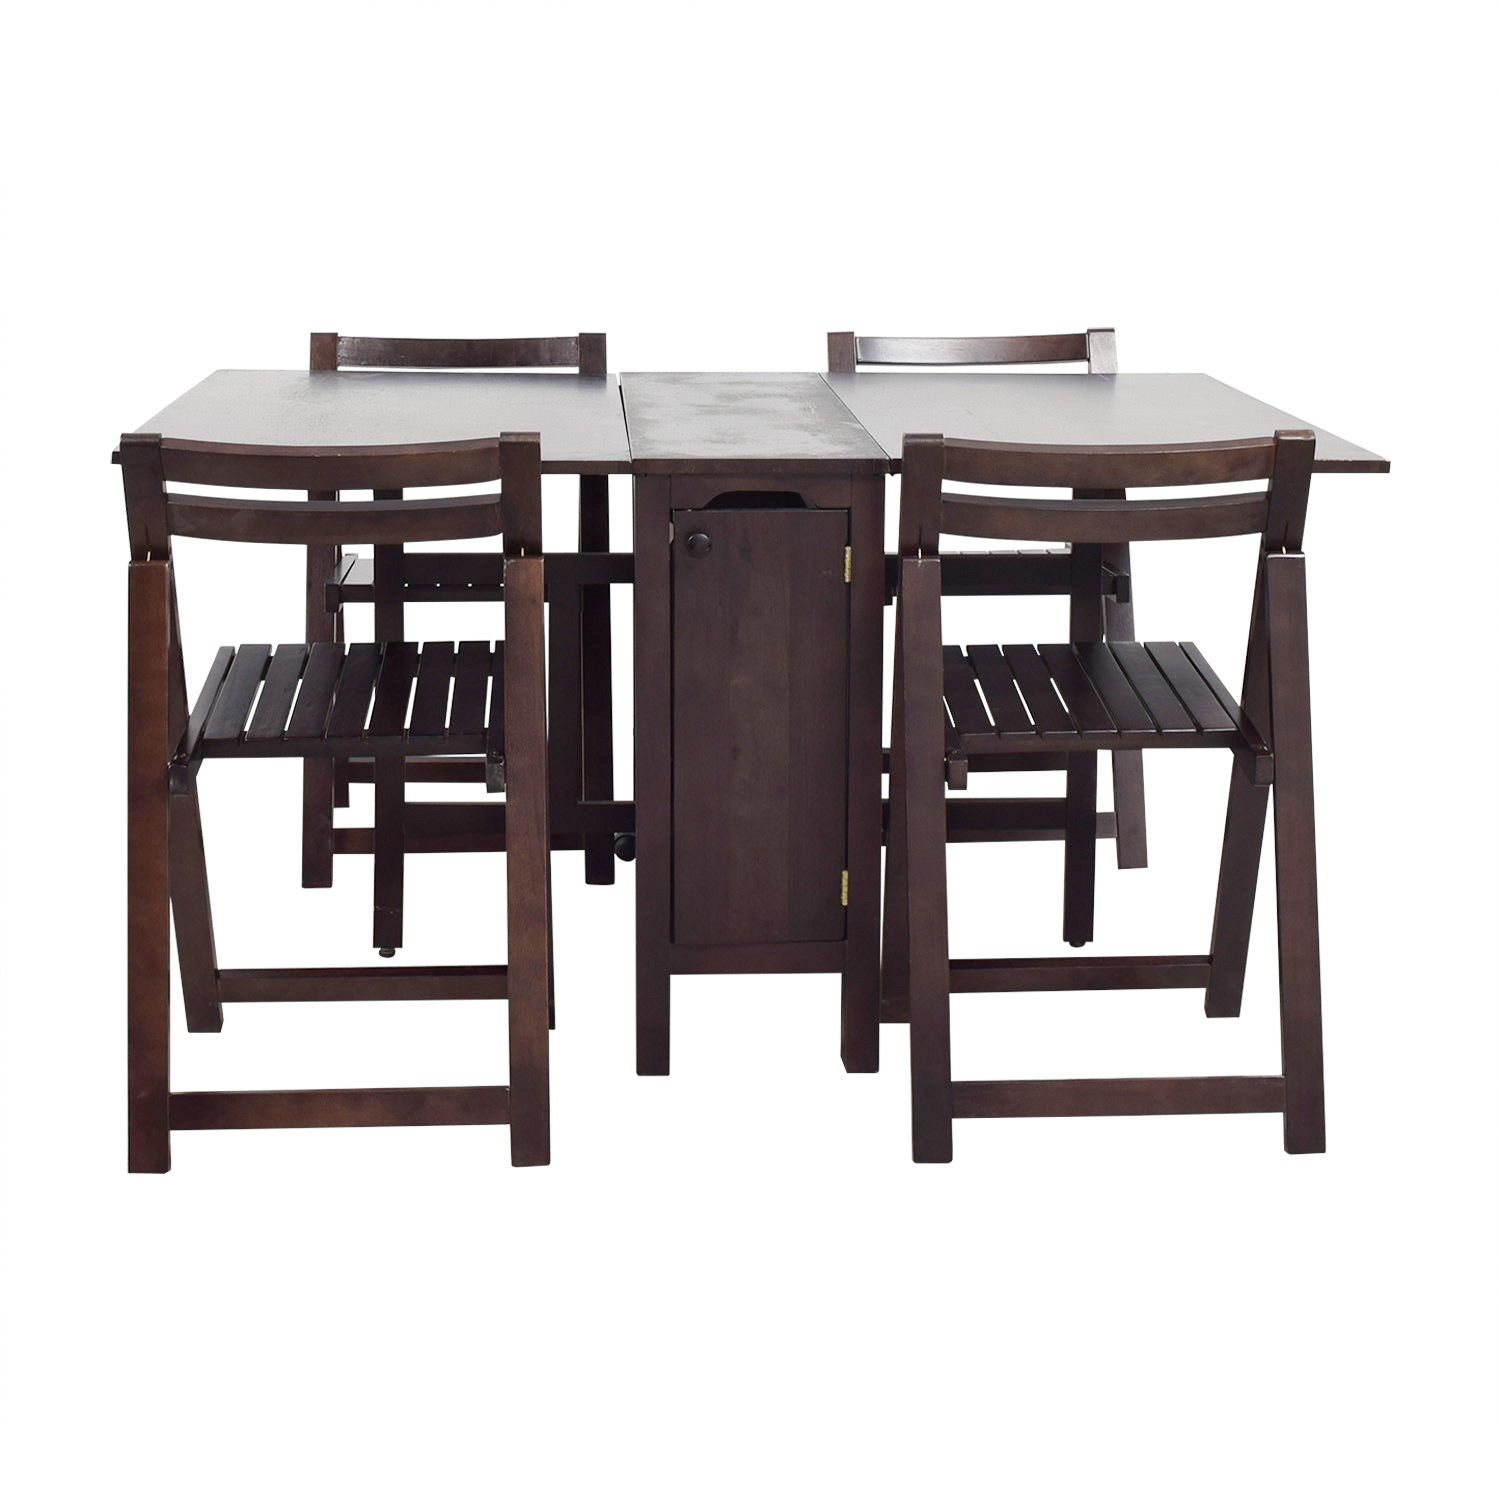 Bed Bath & Beyond Bed Bath & Beyond Wooden Folding Table Set dimensions